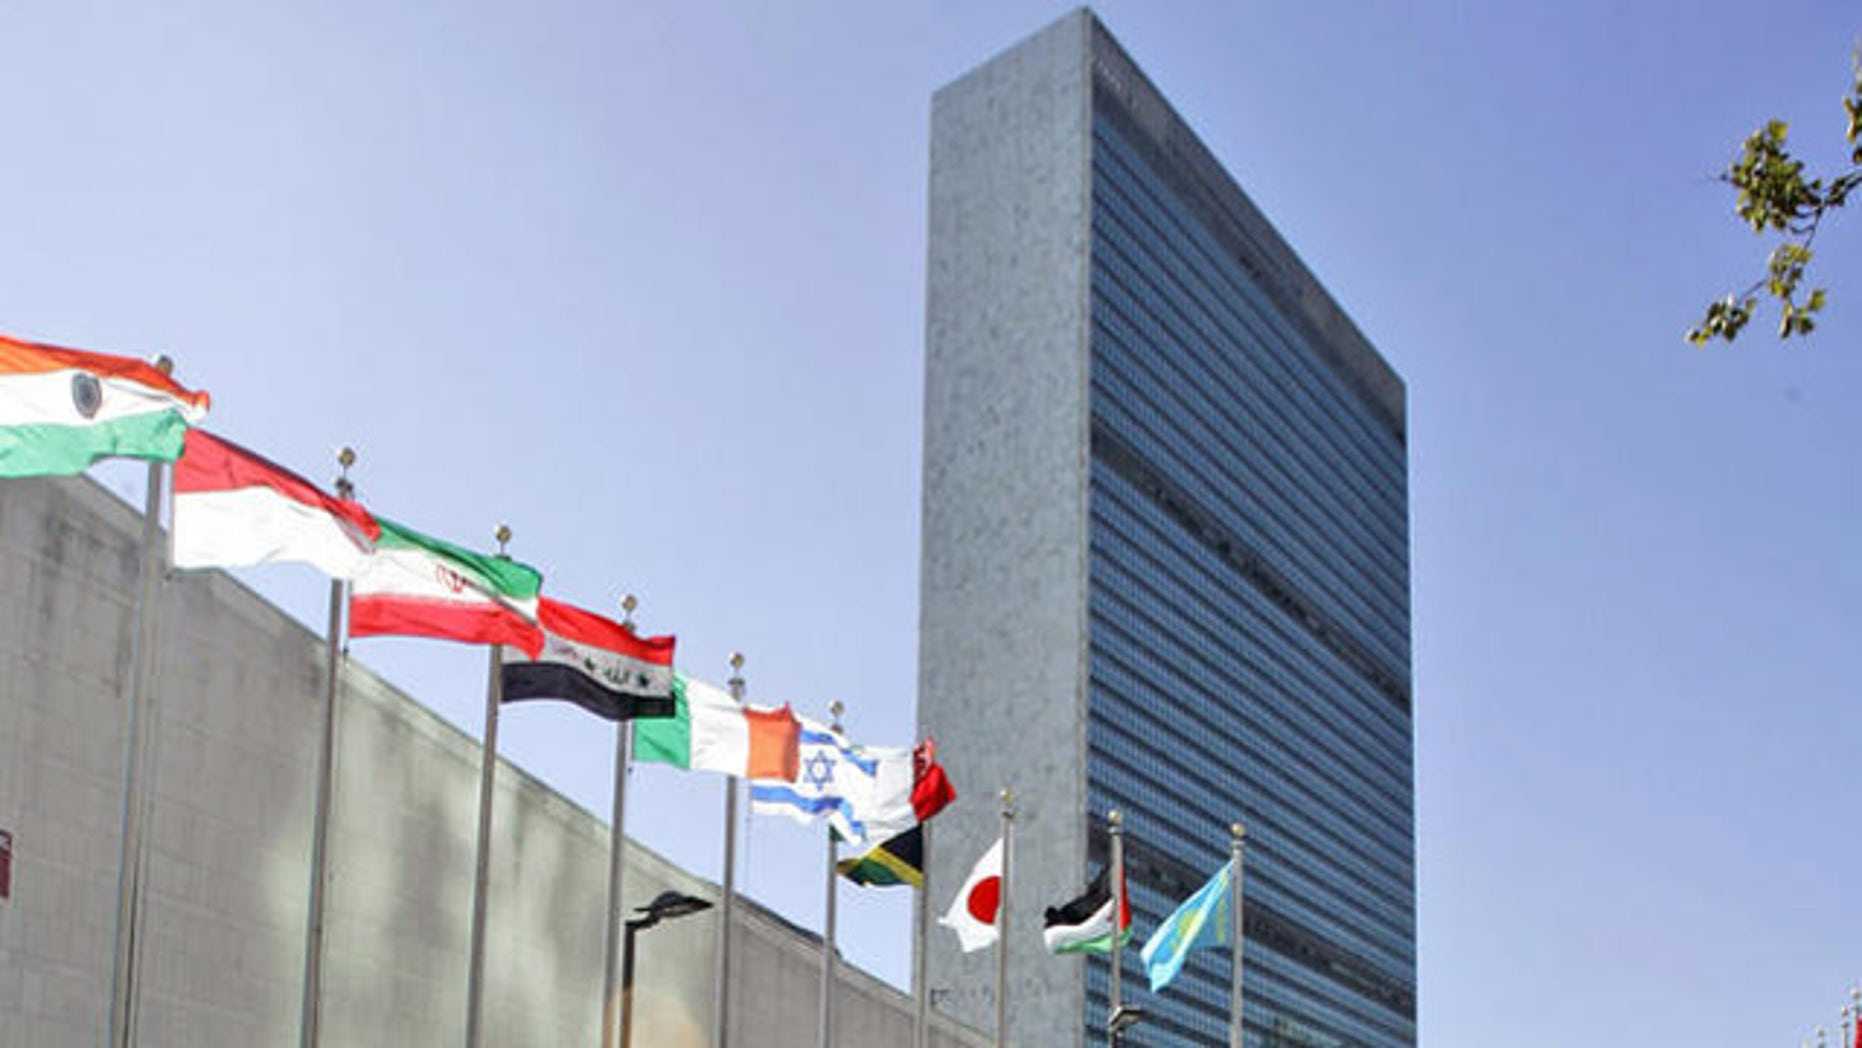 The United Nations hopes to build a second building in New York that could rise as high as its landmark Secretariat building.